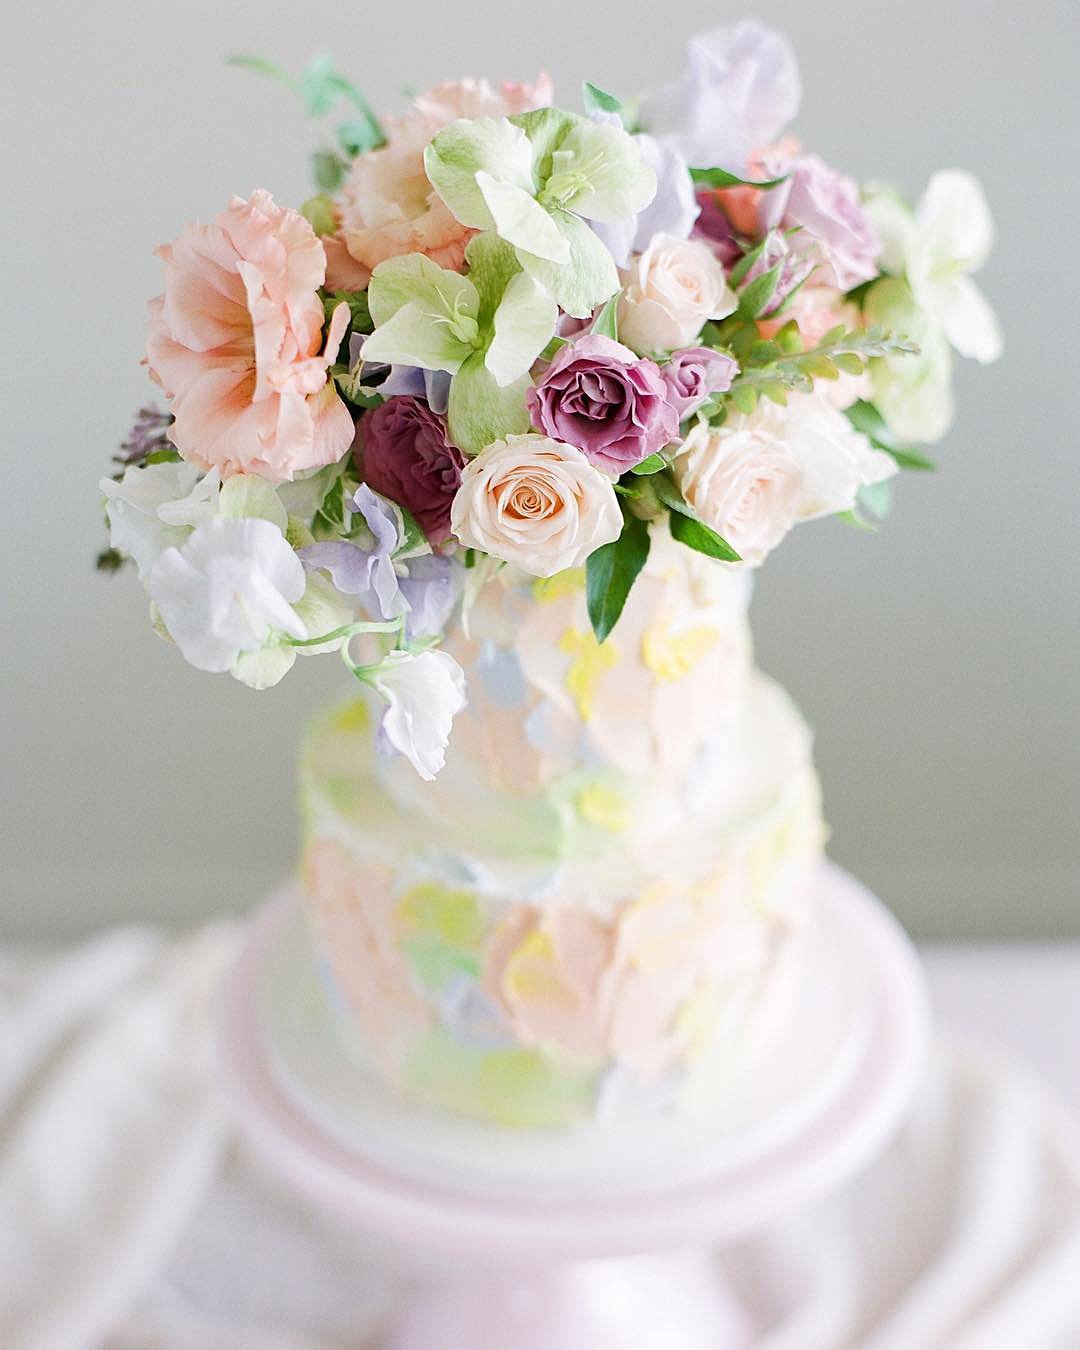 wedding colors Rose Pink Blush Pink Turquoise Sky Blue wedding cake with flowers